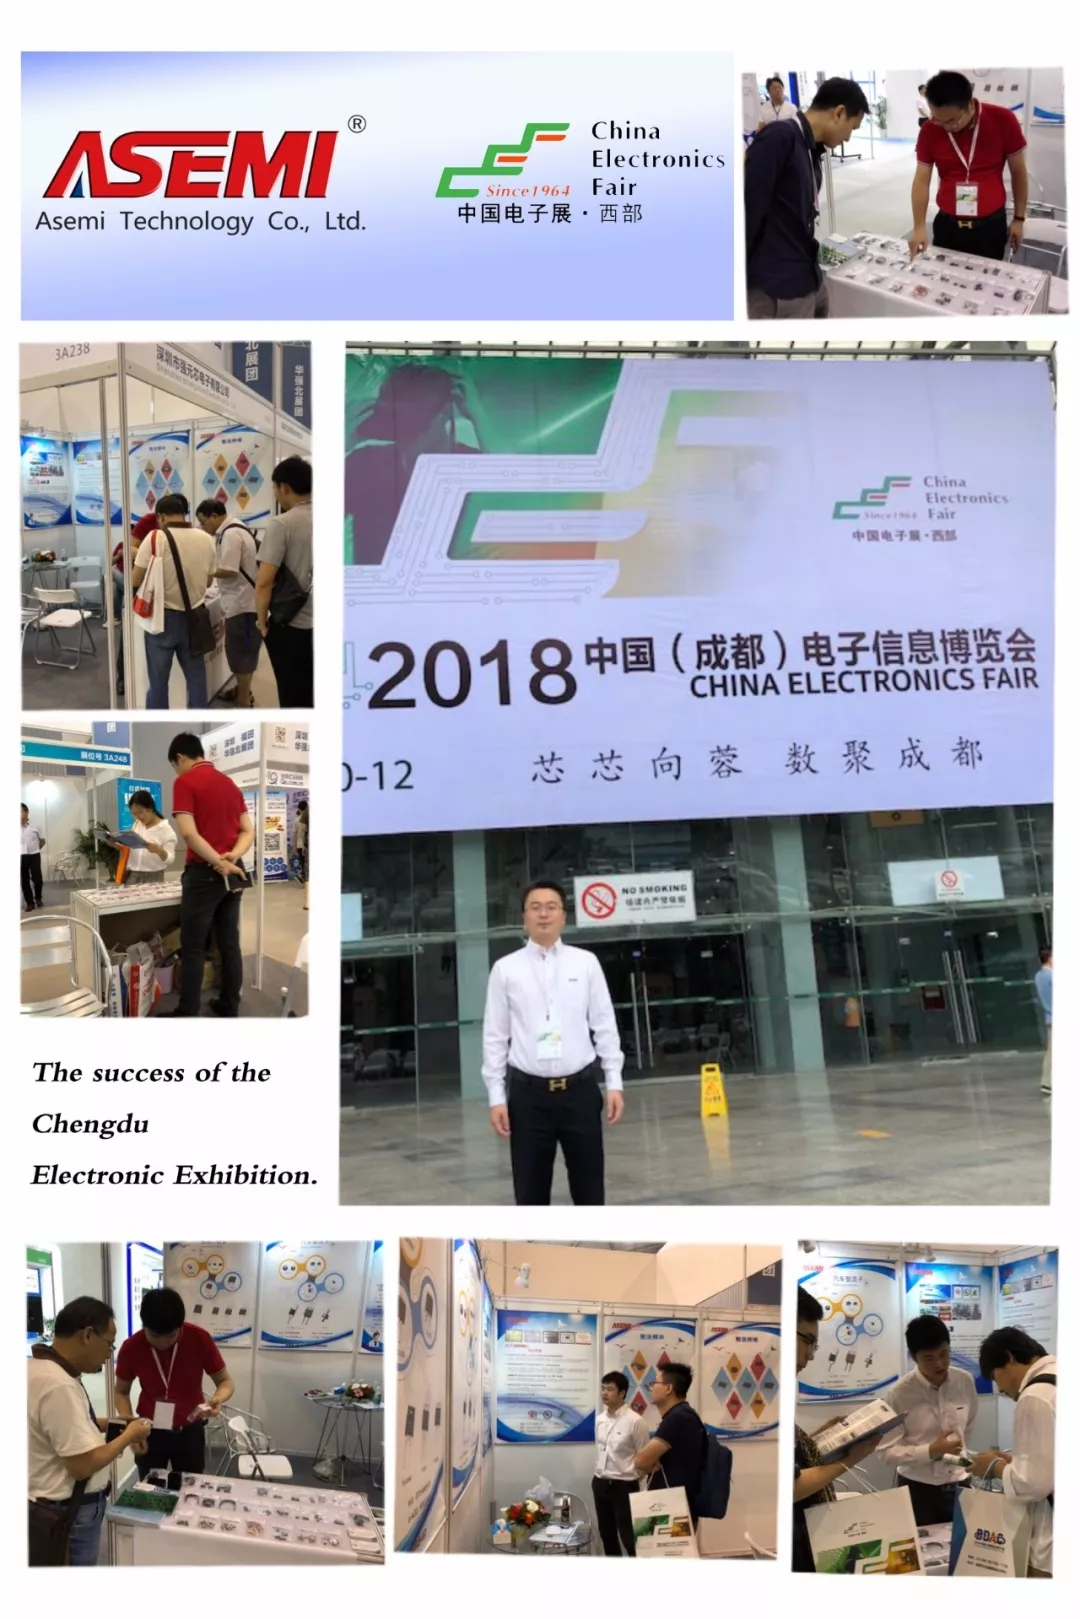 ASEMI attended 2018 CHINA ELECTRONICS FAIR